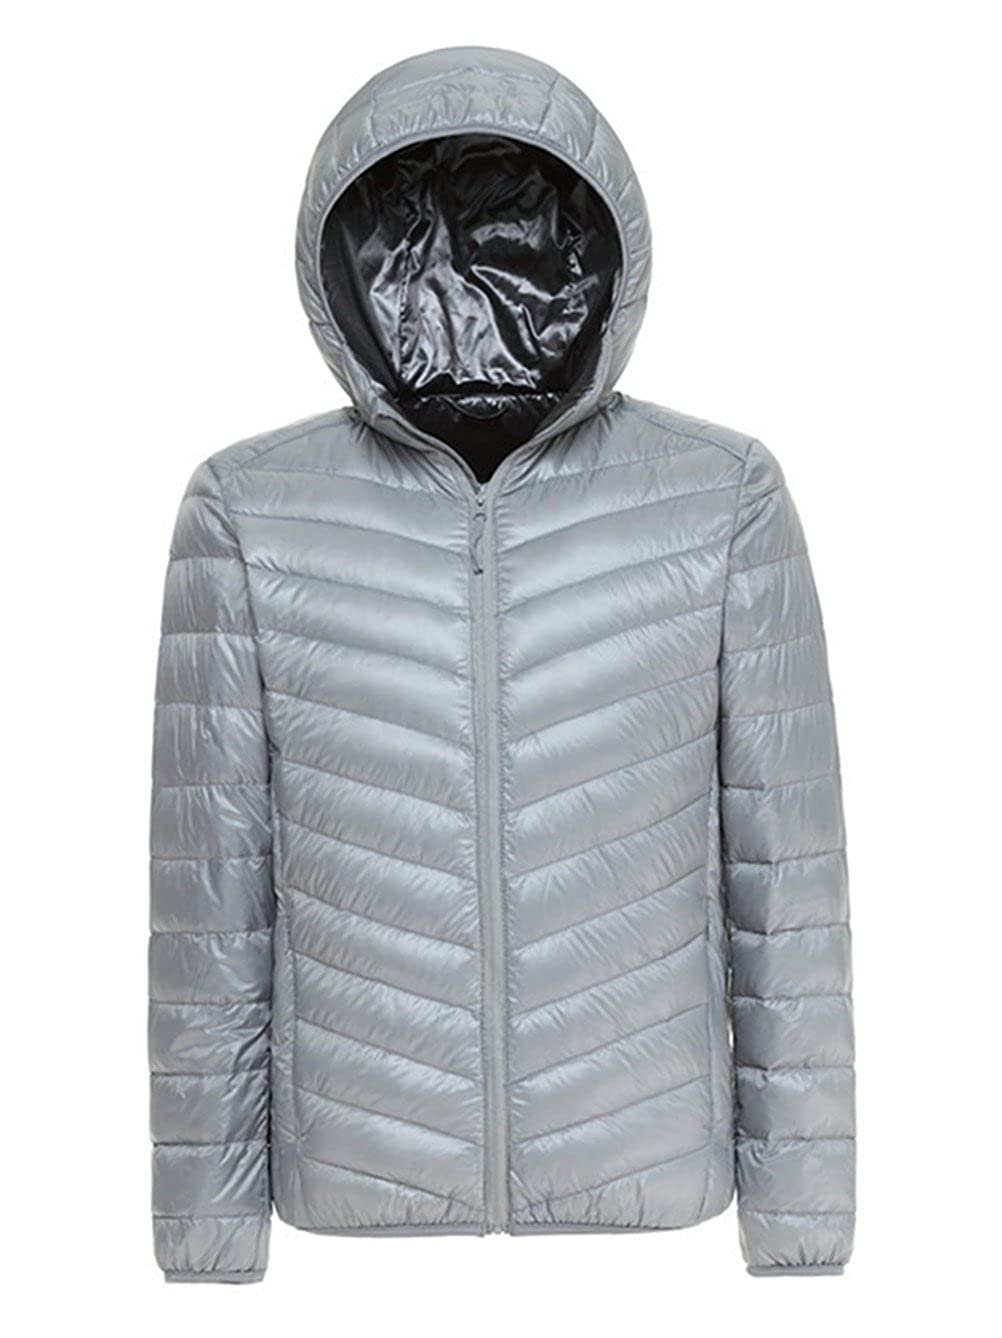 Lanmay Men's Ultralight Packable Hooded Down Jacket Puffer Down Coats